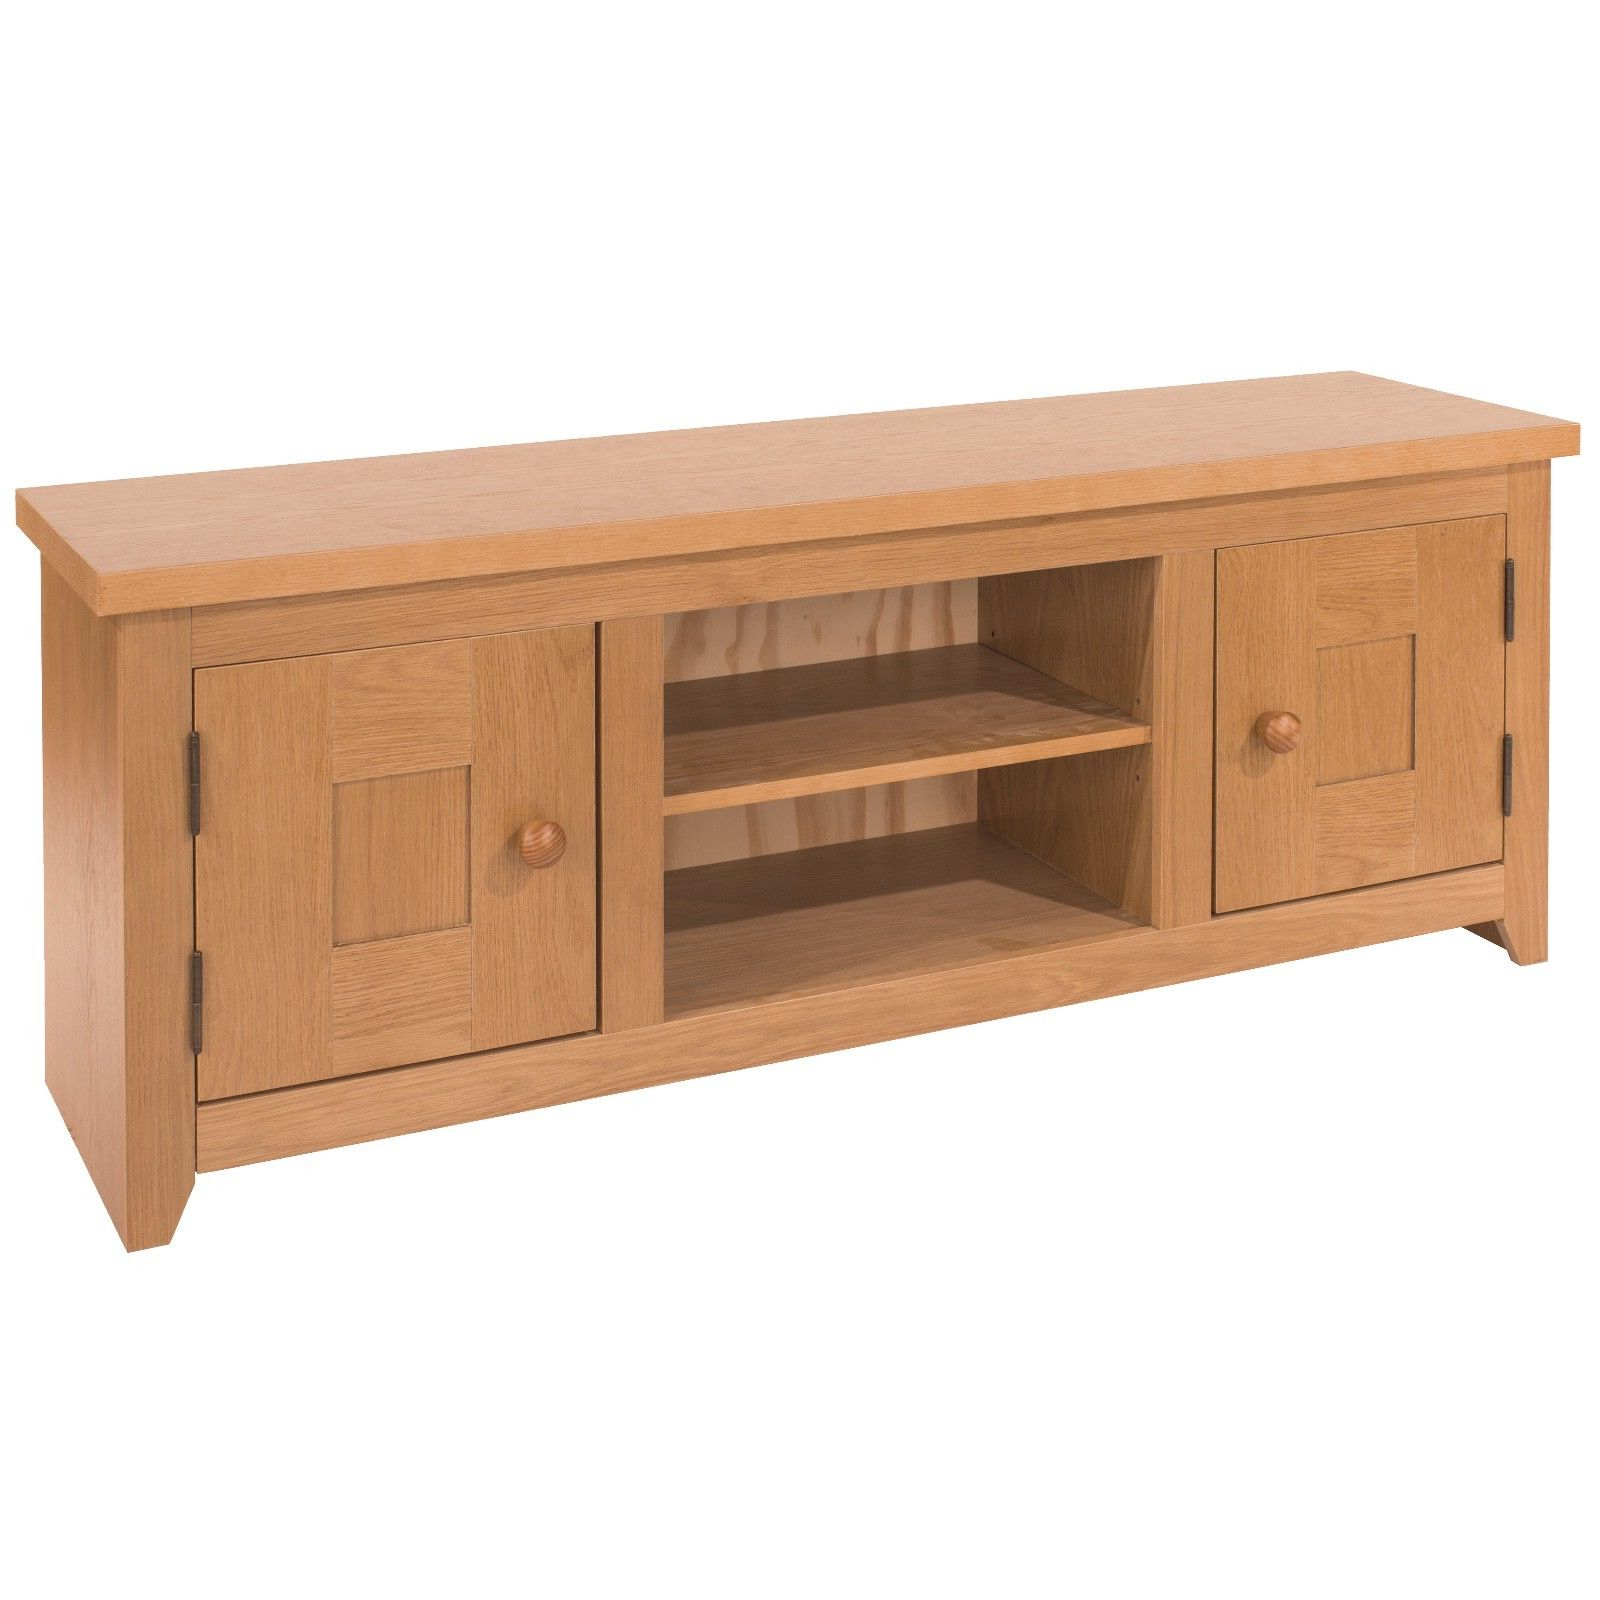 Oak Tv Cabinets For Flat Screens With Doors Pertaining To Favorite Hamilton Oak Ash Vaneer Flat Screen Tv Unit With 2 Doors And Shelf (Gallery 15 of 20)